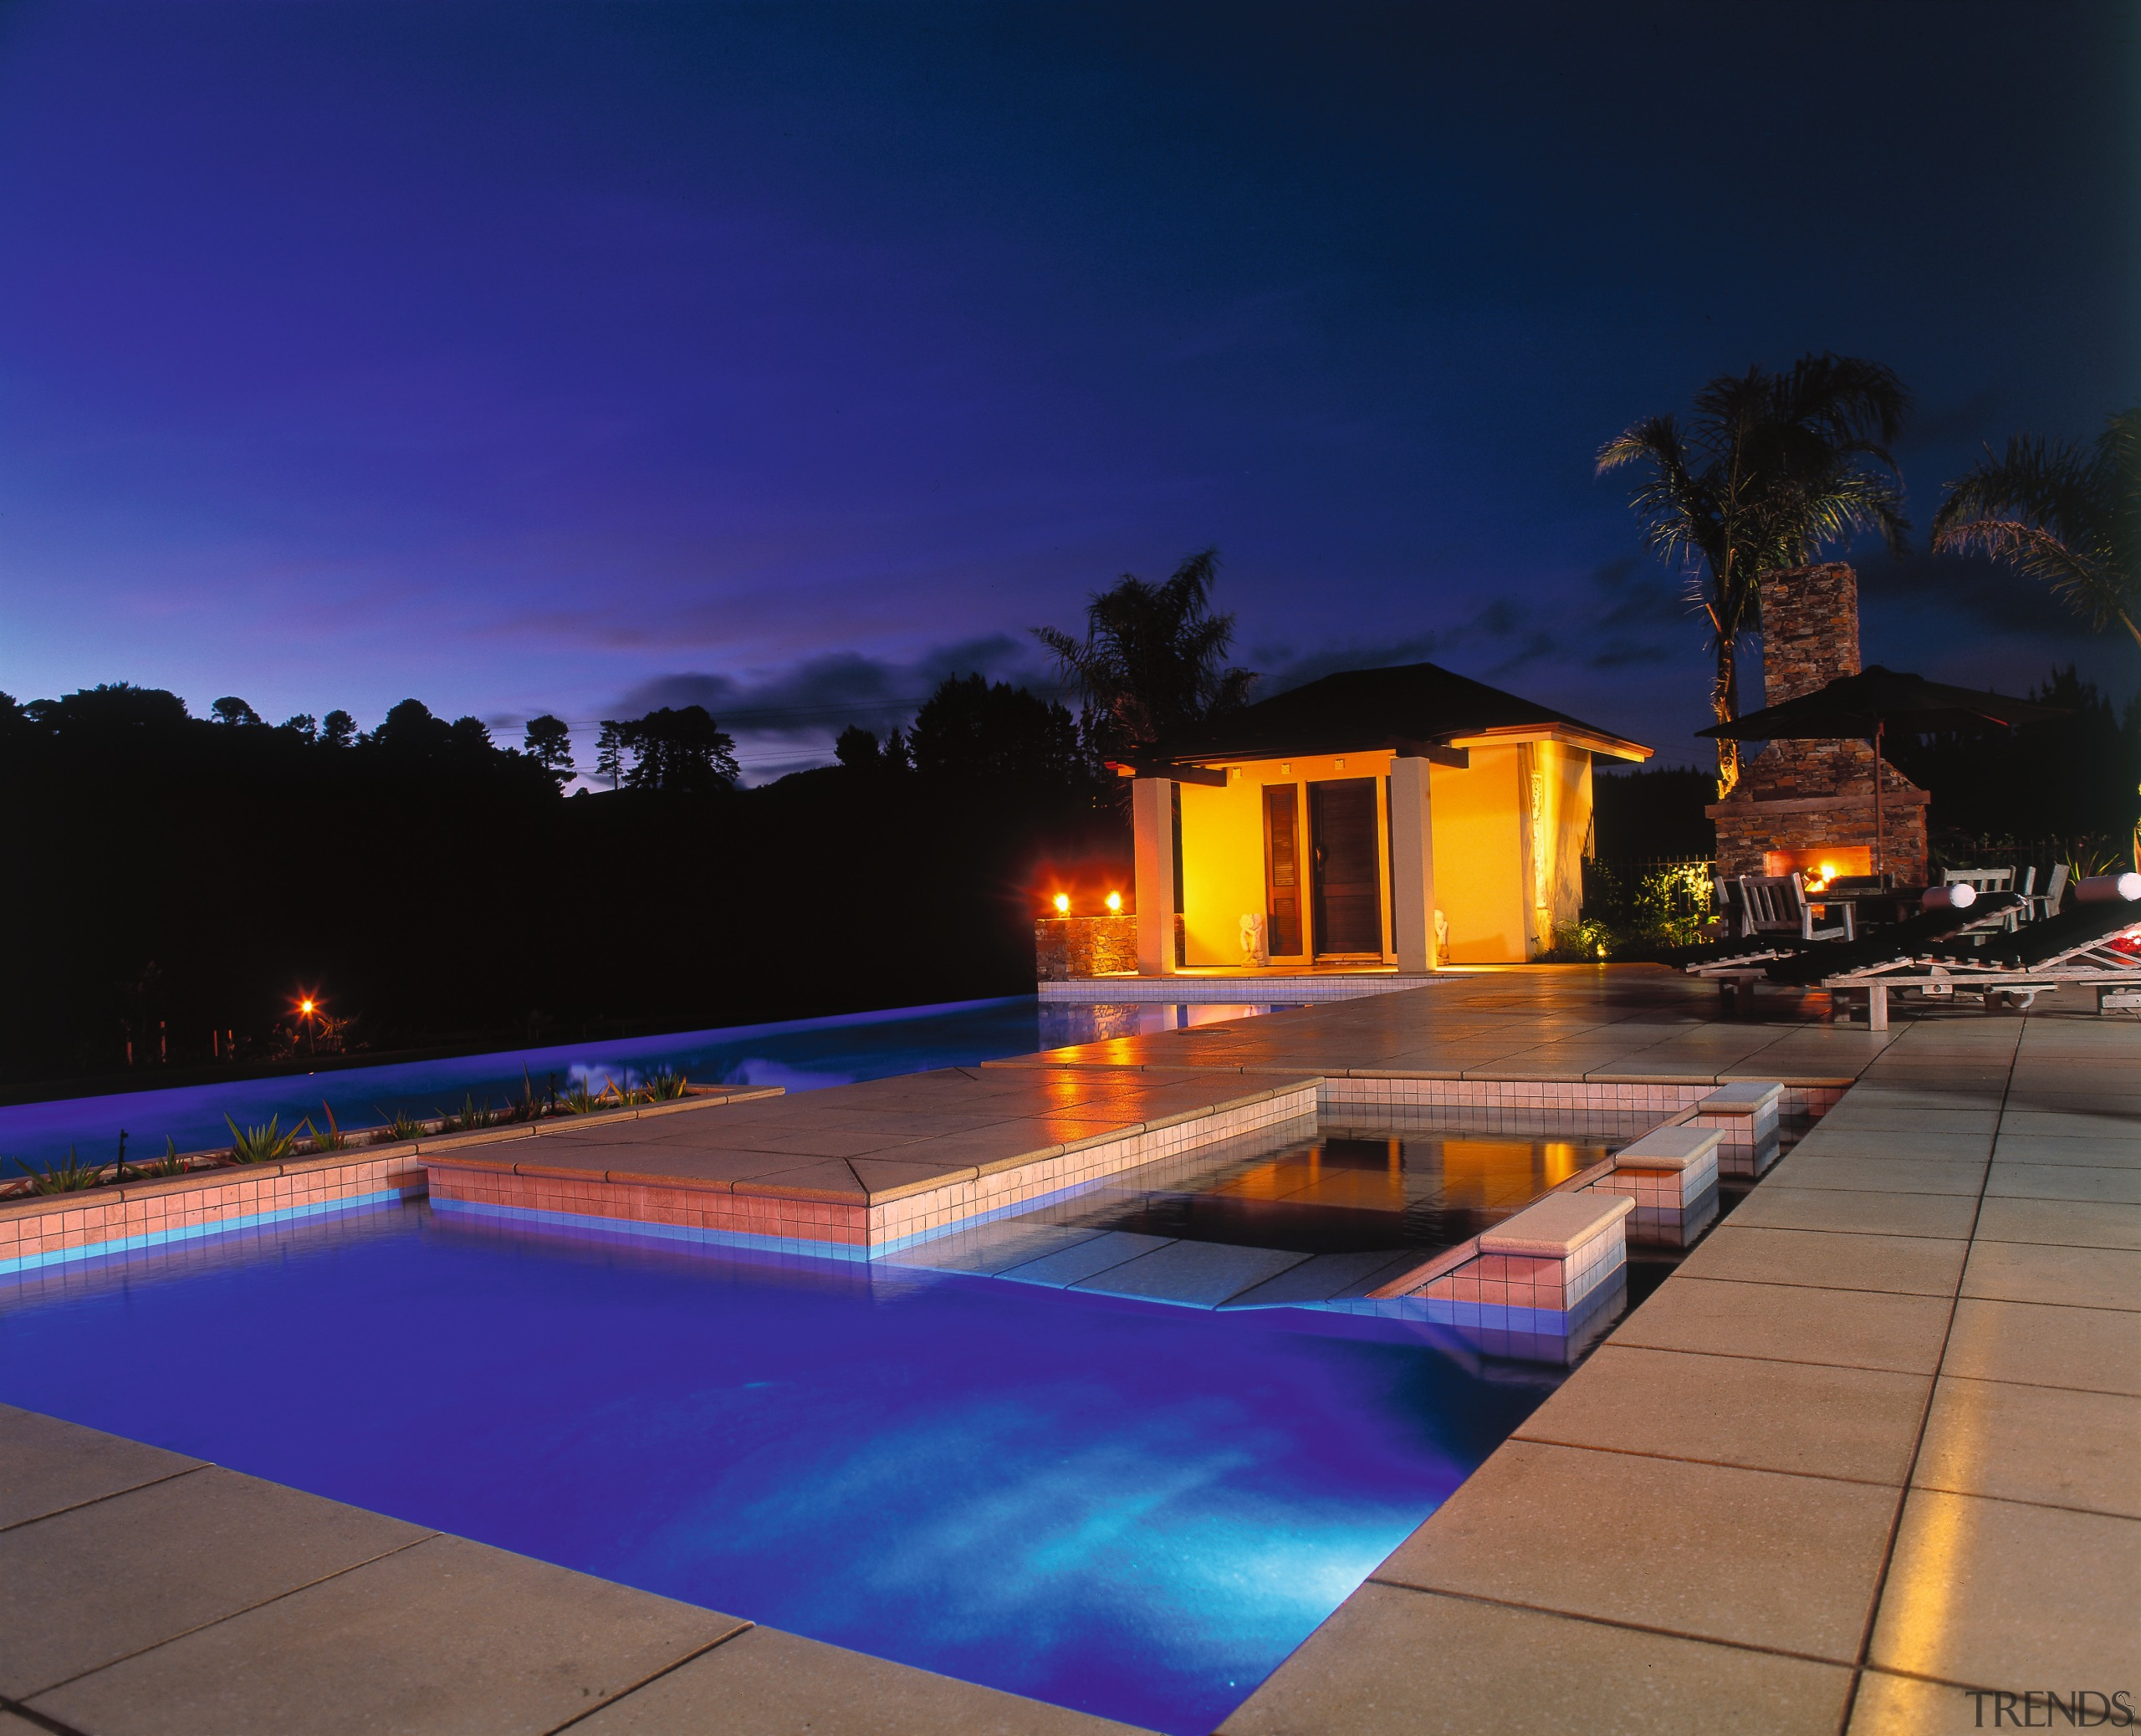 Evening shot of outdoor pool with large paving architecture, estate, home, house, leisure, lighting, property, real estate, reflection, resort, sky, swimming pool, water, blue